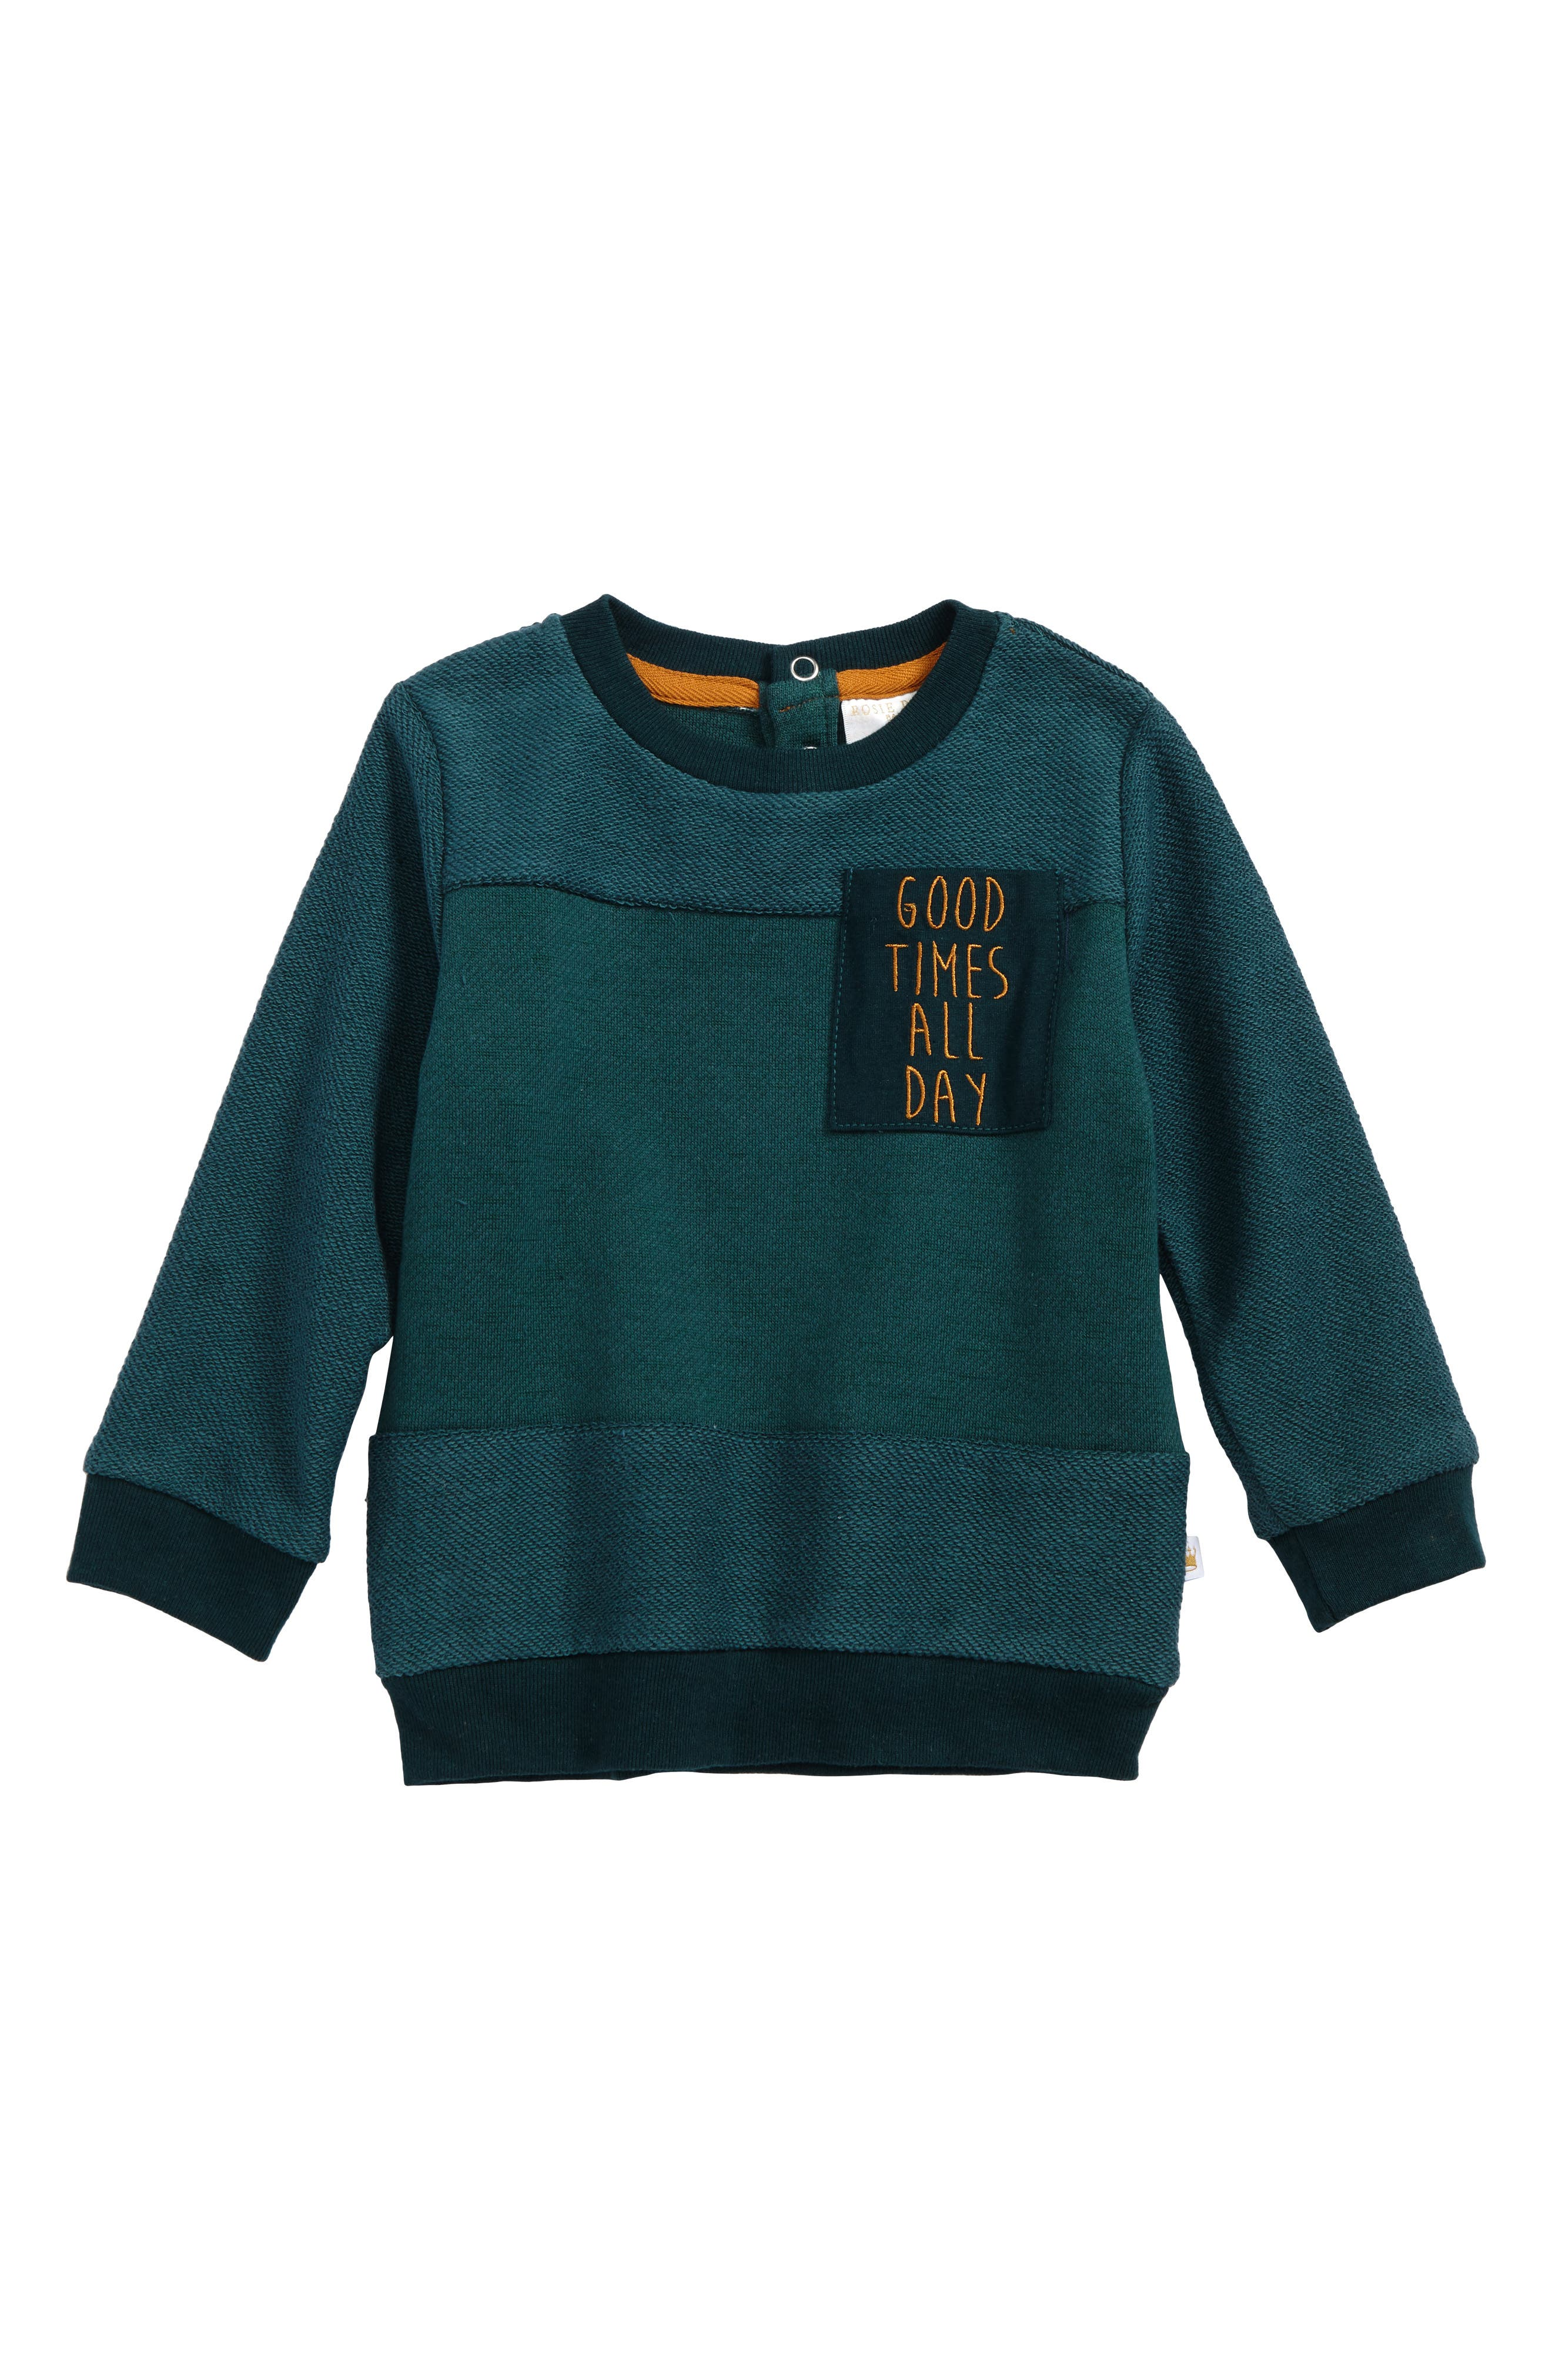 Rosie Pope Good Times All Day Pullover Sweatshirt (Baby Boys)